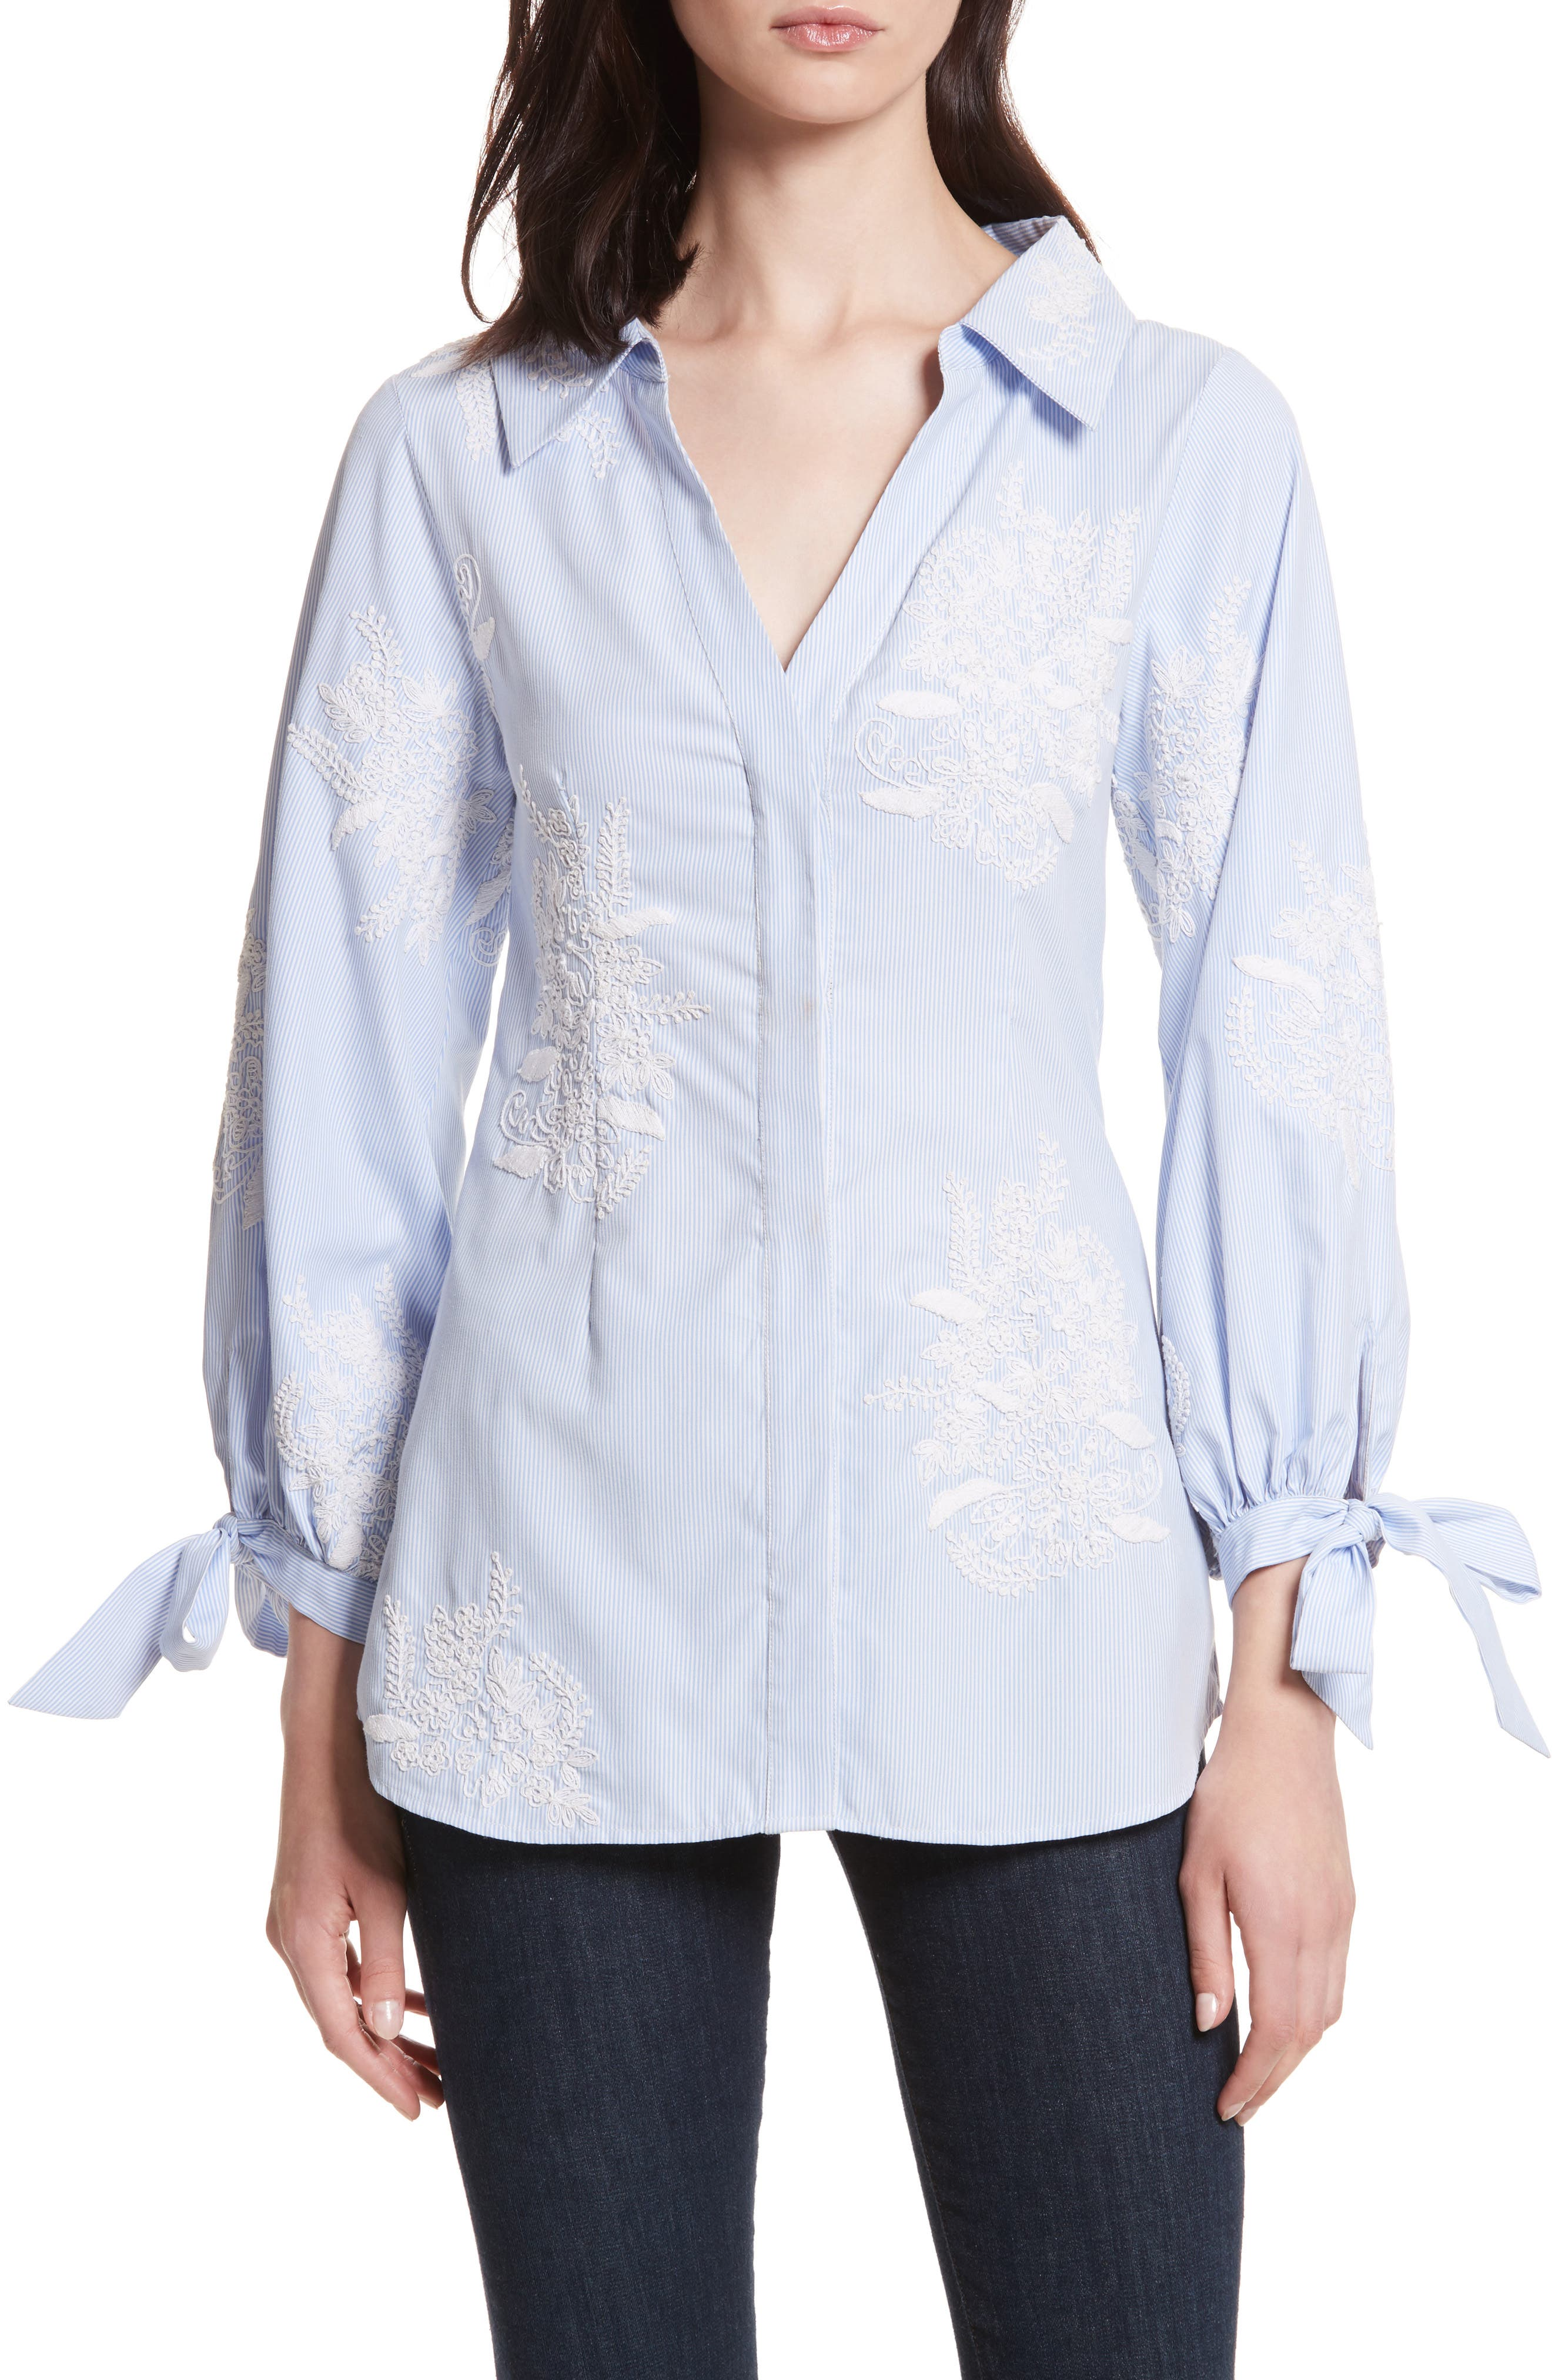 Alternate Image 1 Selected - Alice + Olivia Toro Embroidered Tie Sleeve Blouse